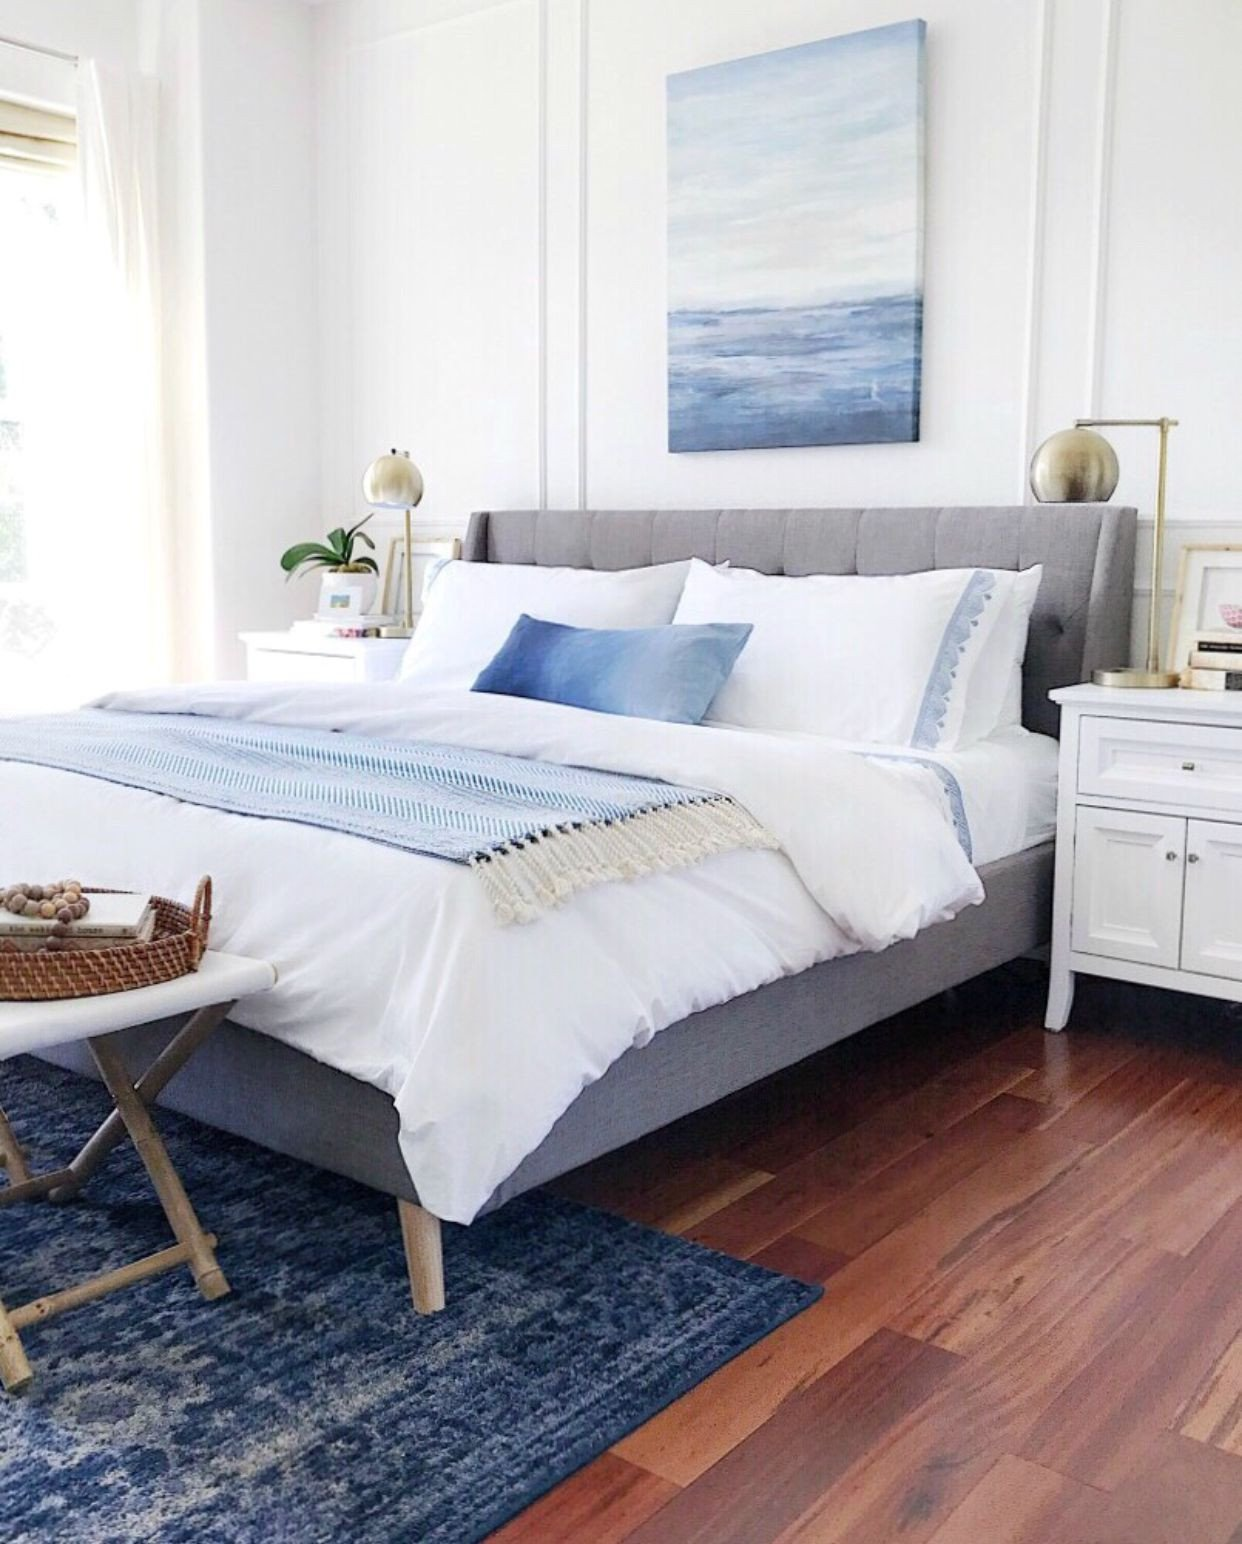 White Coastal Bedroom Furniture Unique How to Choose A Design Style that Feels Right for You